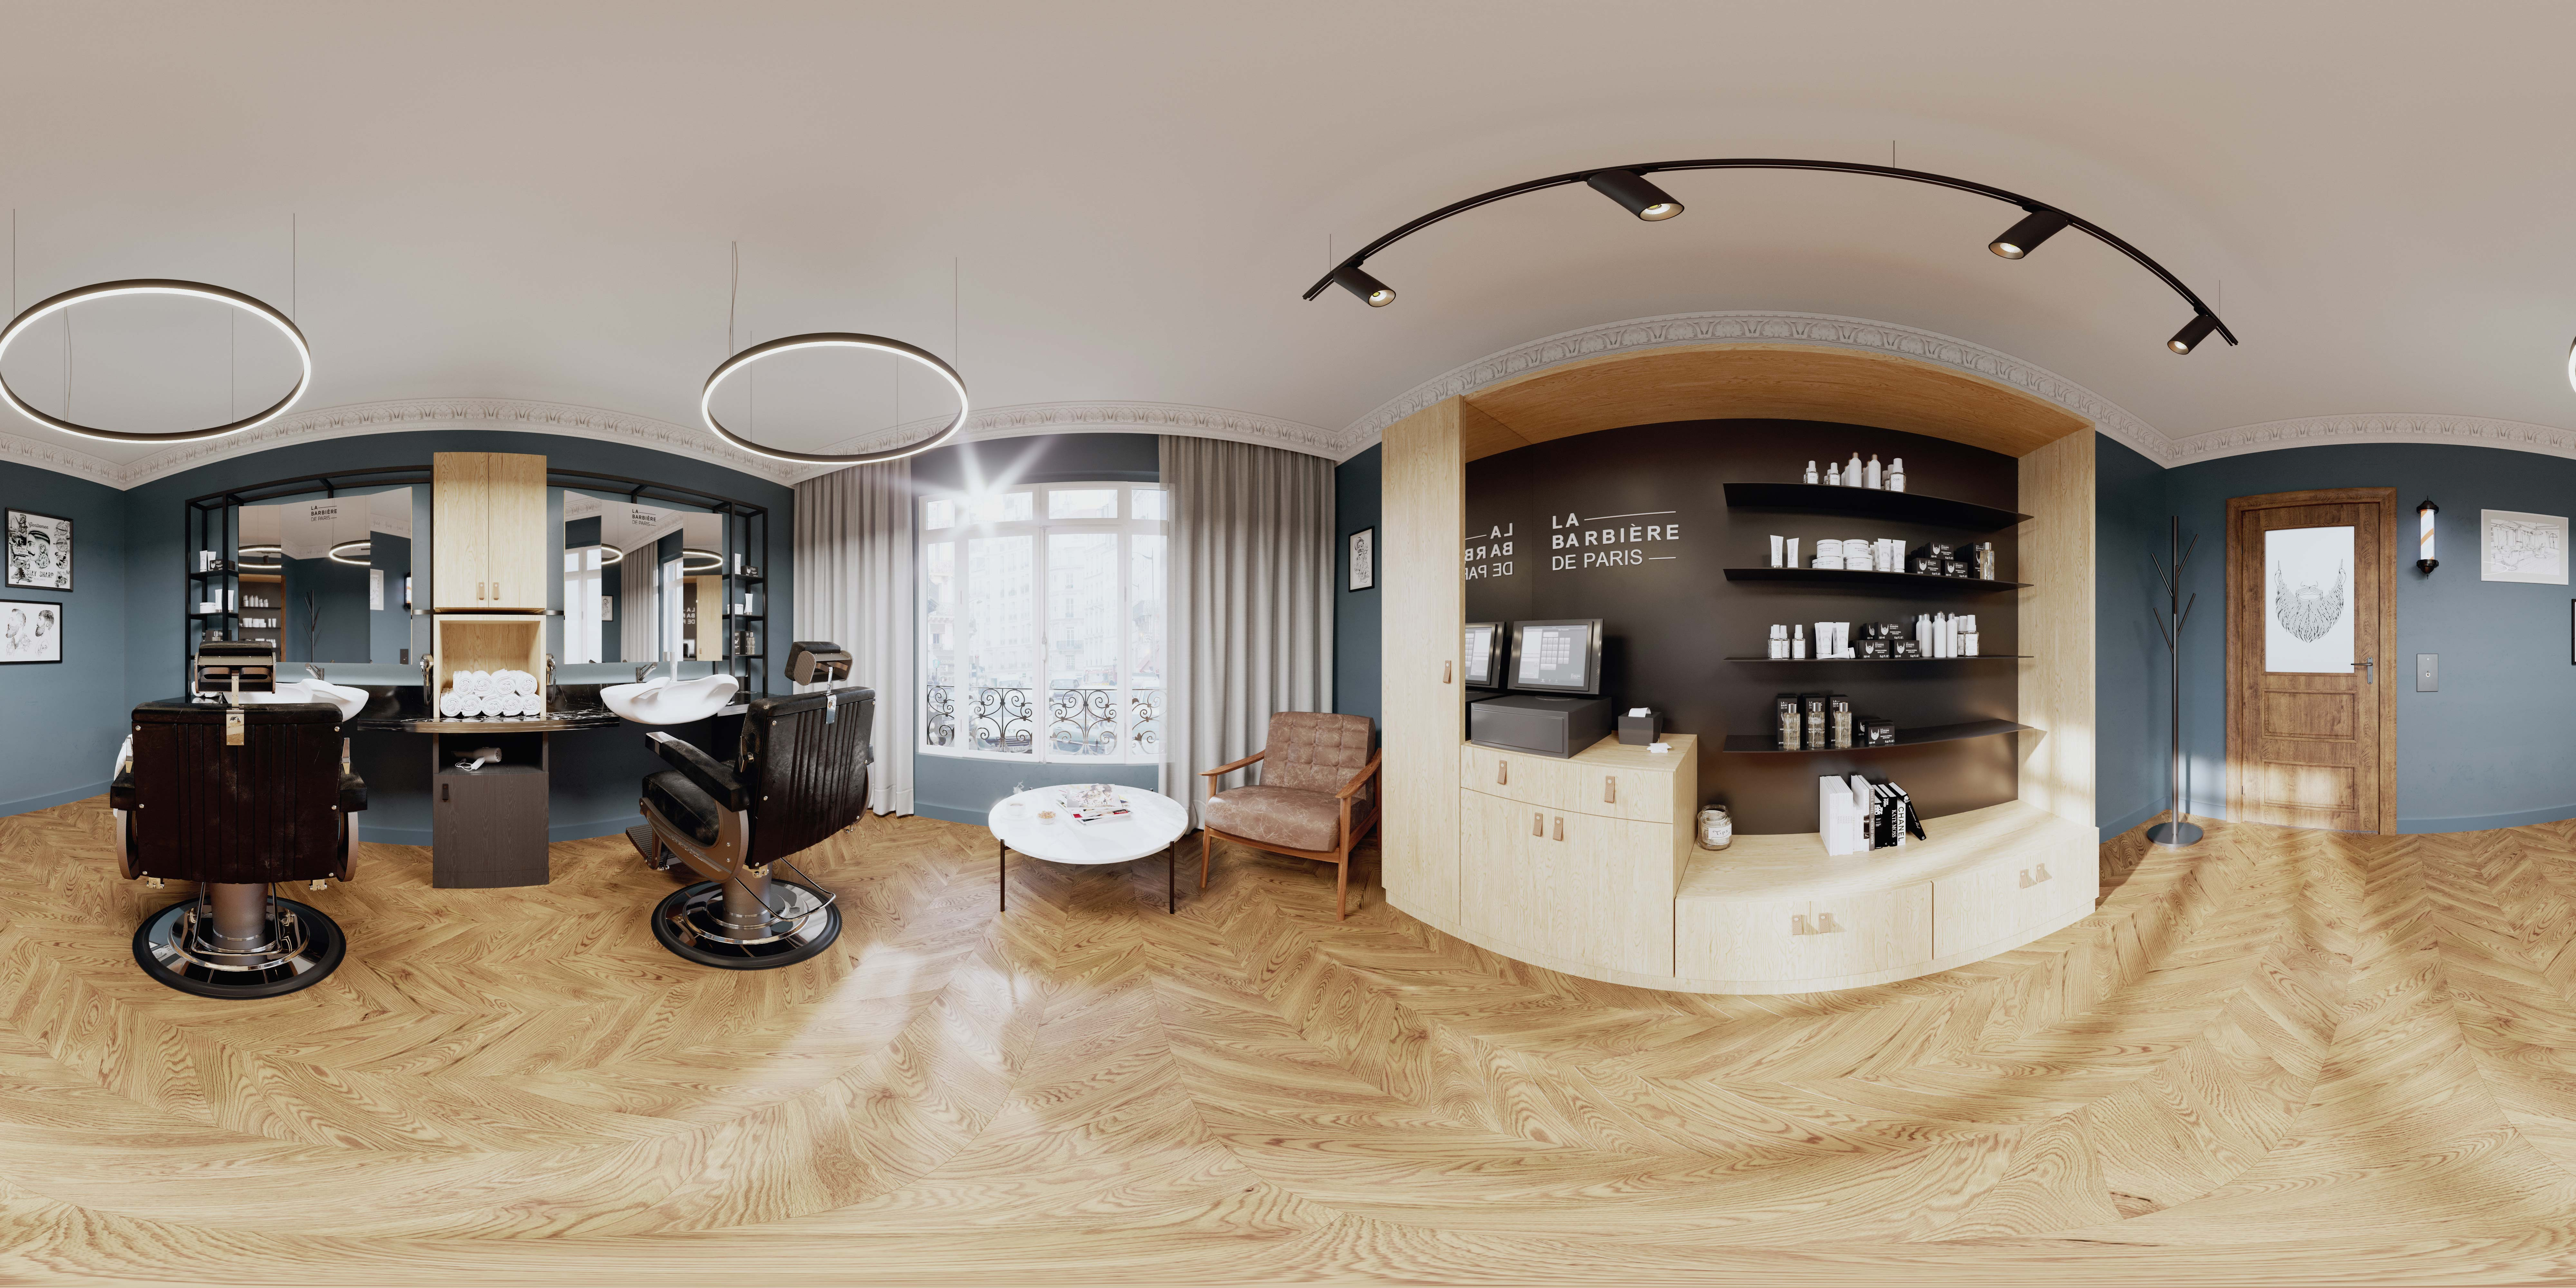 Treatment products, 3D rendering